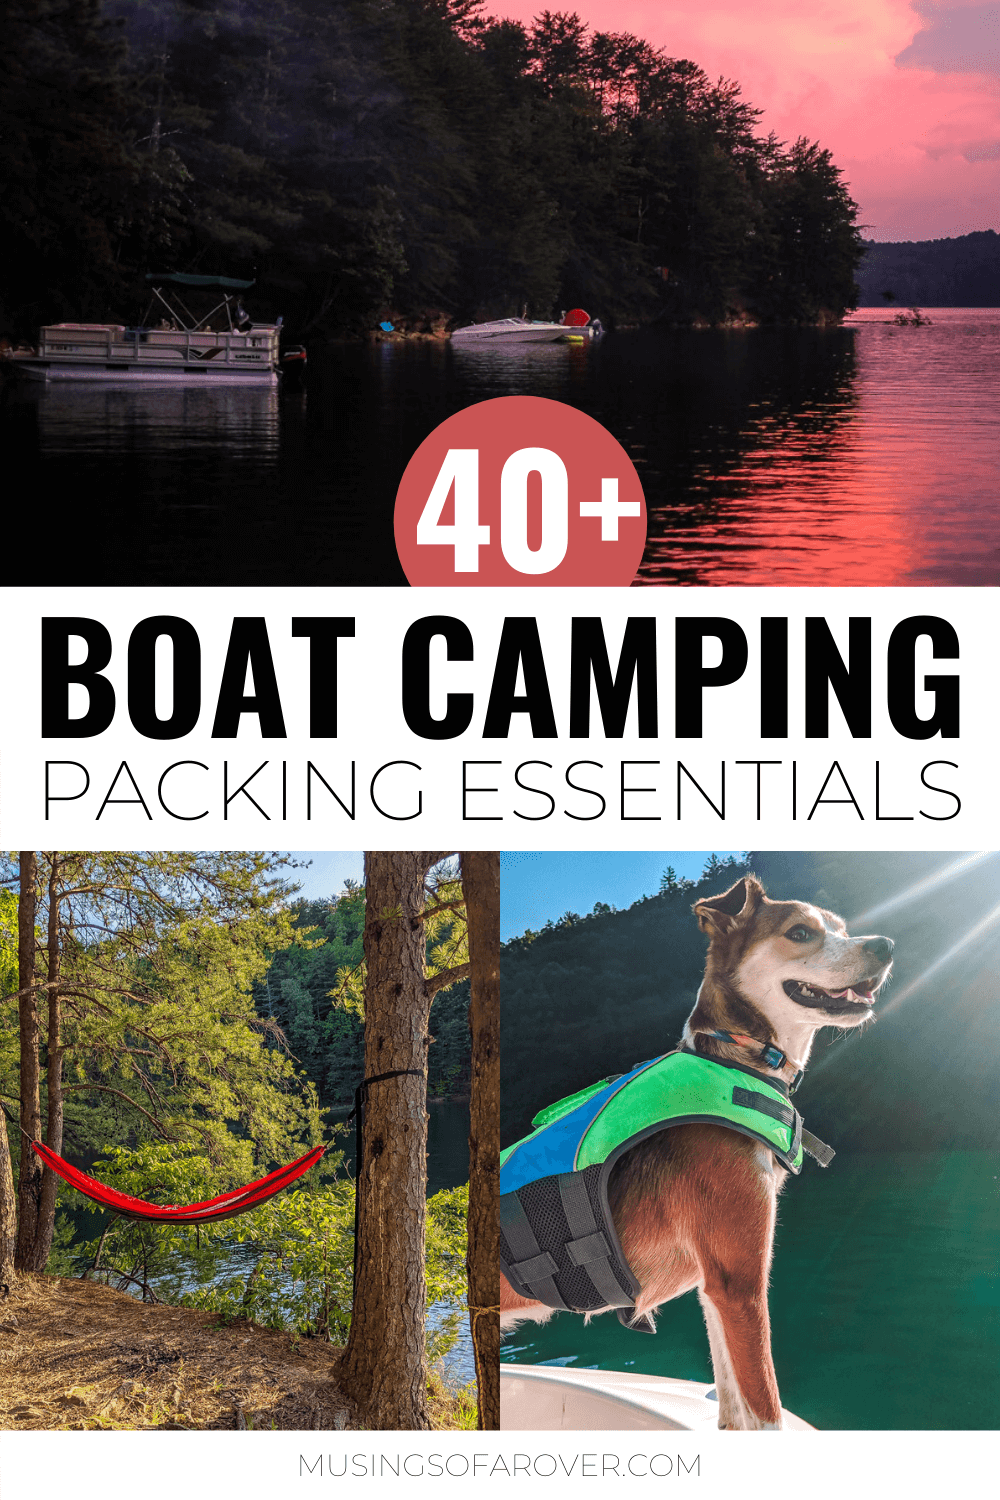 Here you'll find a complete list of everything I bring boat camping. Use this checklist to make sure you pack the essentials you need to have a great trip.